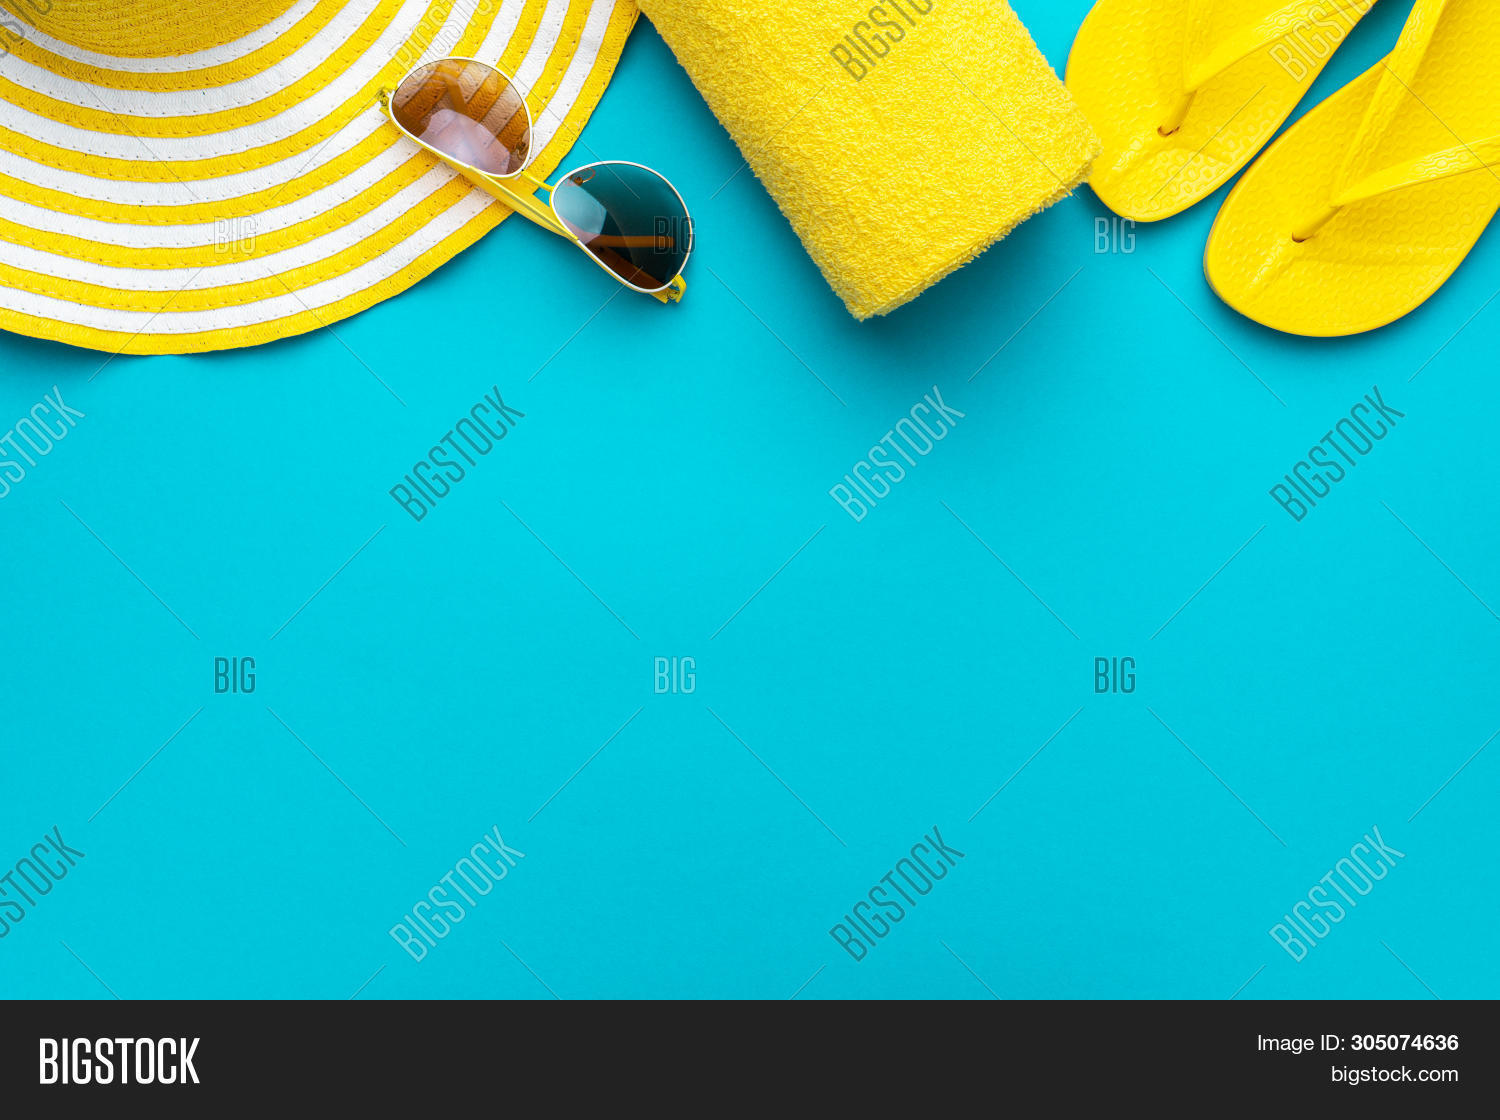 accessories,background,beach,blue,closeup,concept,elegance,fashion,flip-flops,fun,glasses,hat,holidays,hot,minimal,modern,object,outfit,protection,relax,rest,retro,sea,shine,striped,style,stylish,summer,sun,sunbathe,sunglasses,sunlight,towel,turquoise,vacation,vibrant,wear,wearing,yellow,young,youth